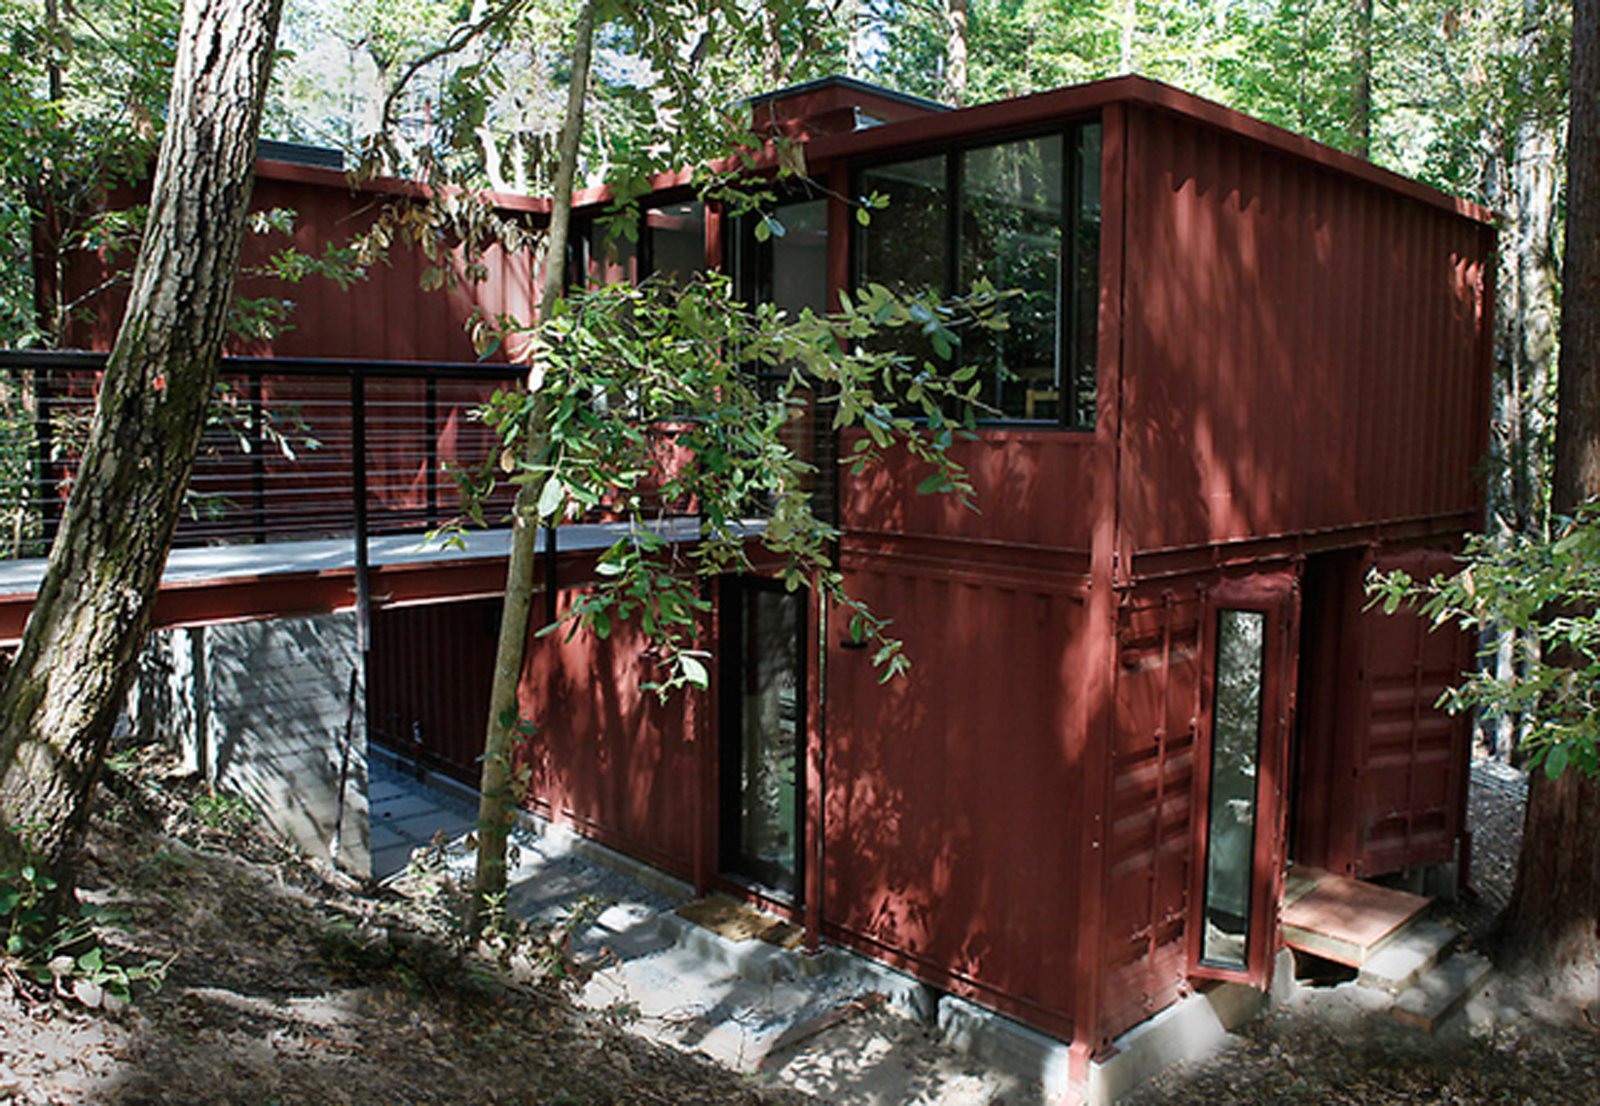 Shipping containers are the building blocks of this residence tucked away in the redwood forests of Santa Cruz, California.  Shipping Containers by Dwell from Amazing Examples of Shipping Container Architecture